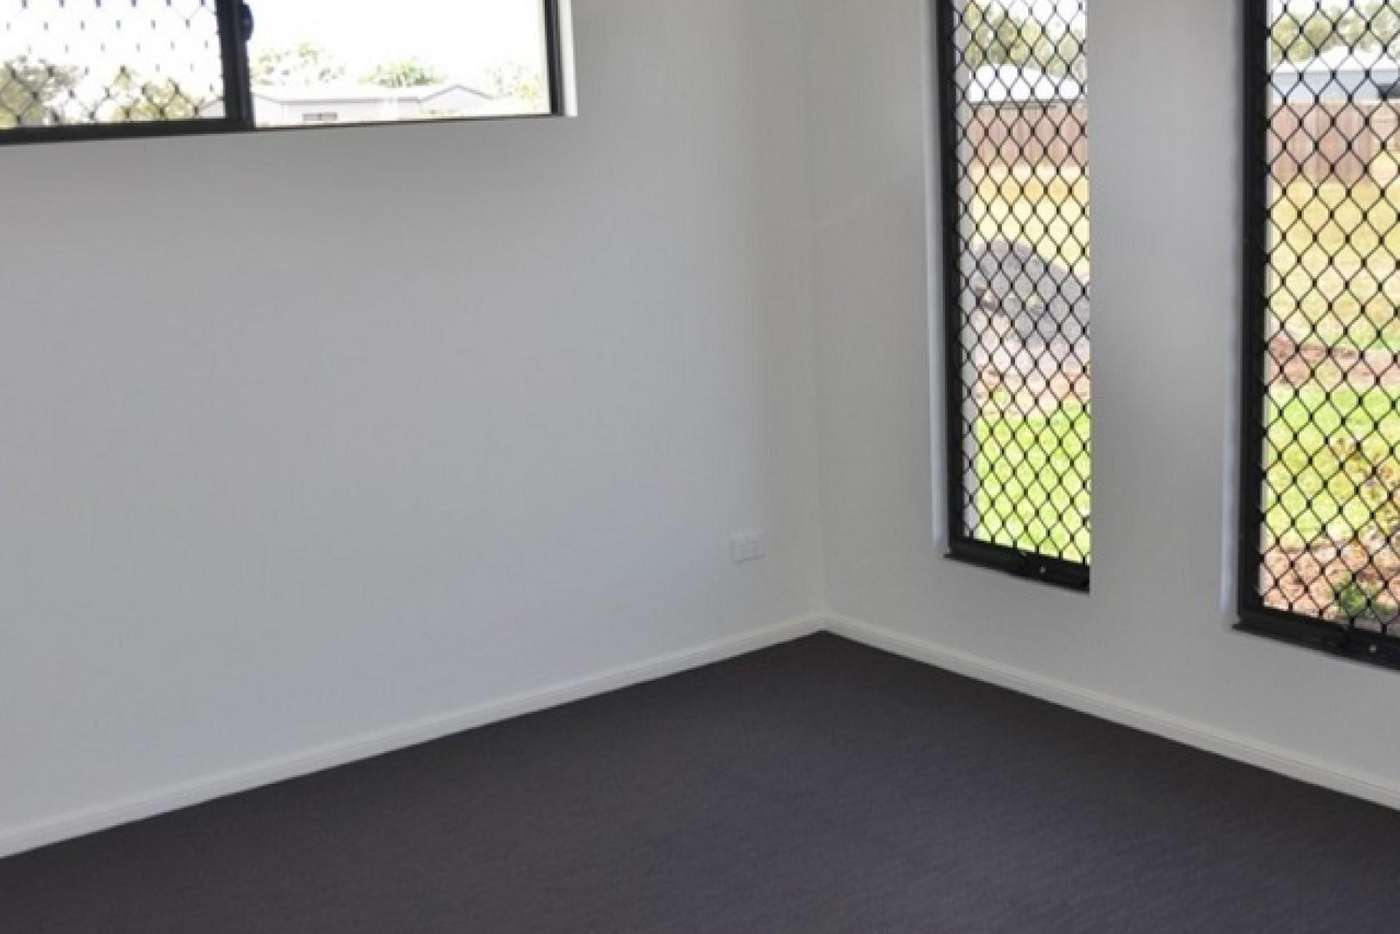 Sixth view of Homely house listing, 5 Eagle Close, Mareeba QLD 4880